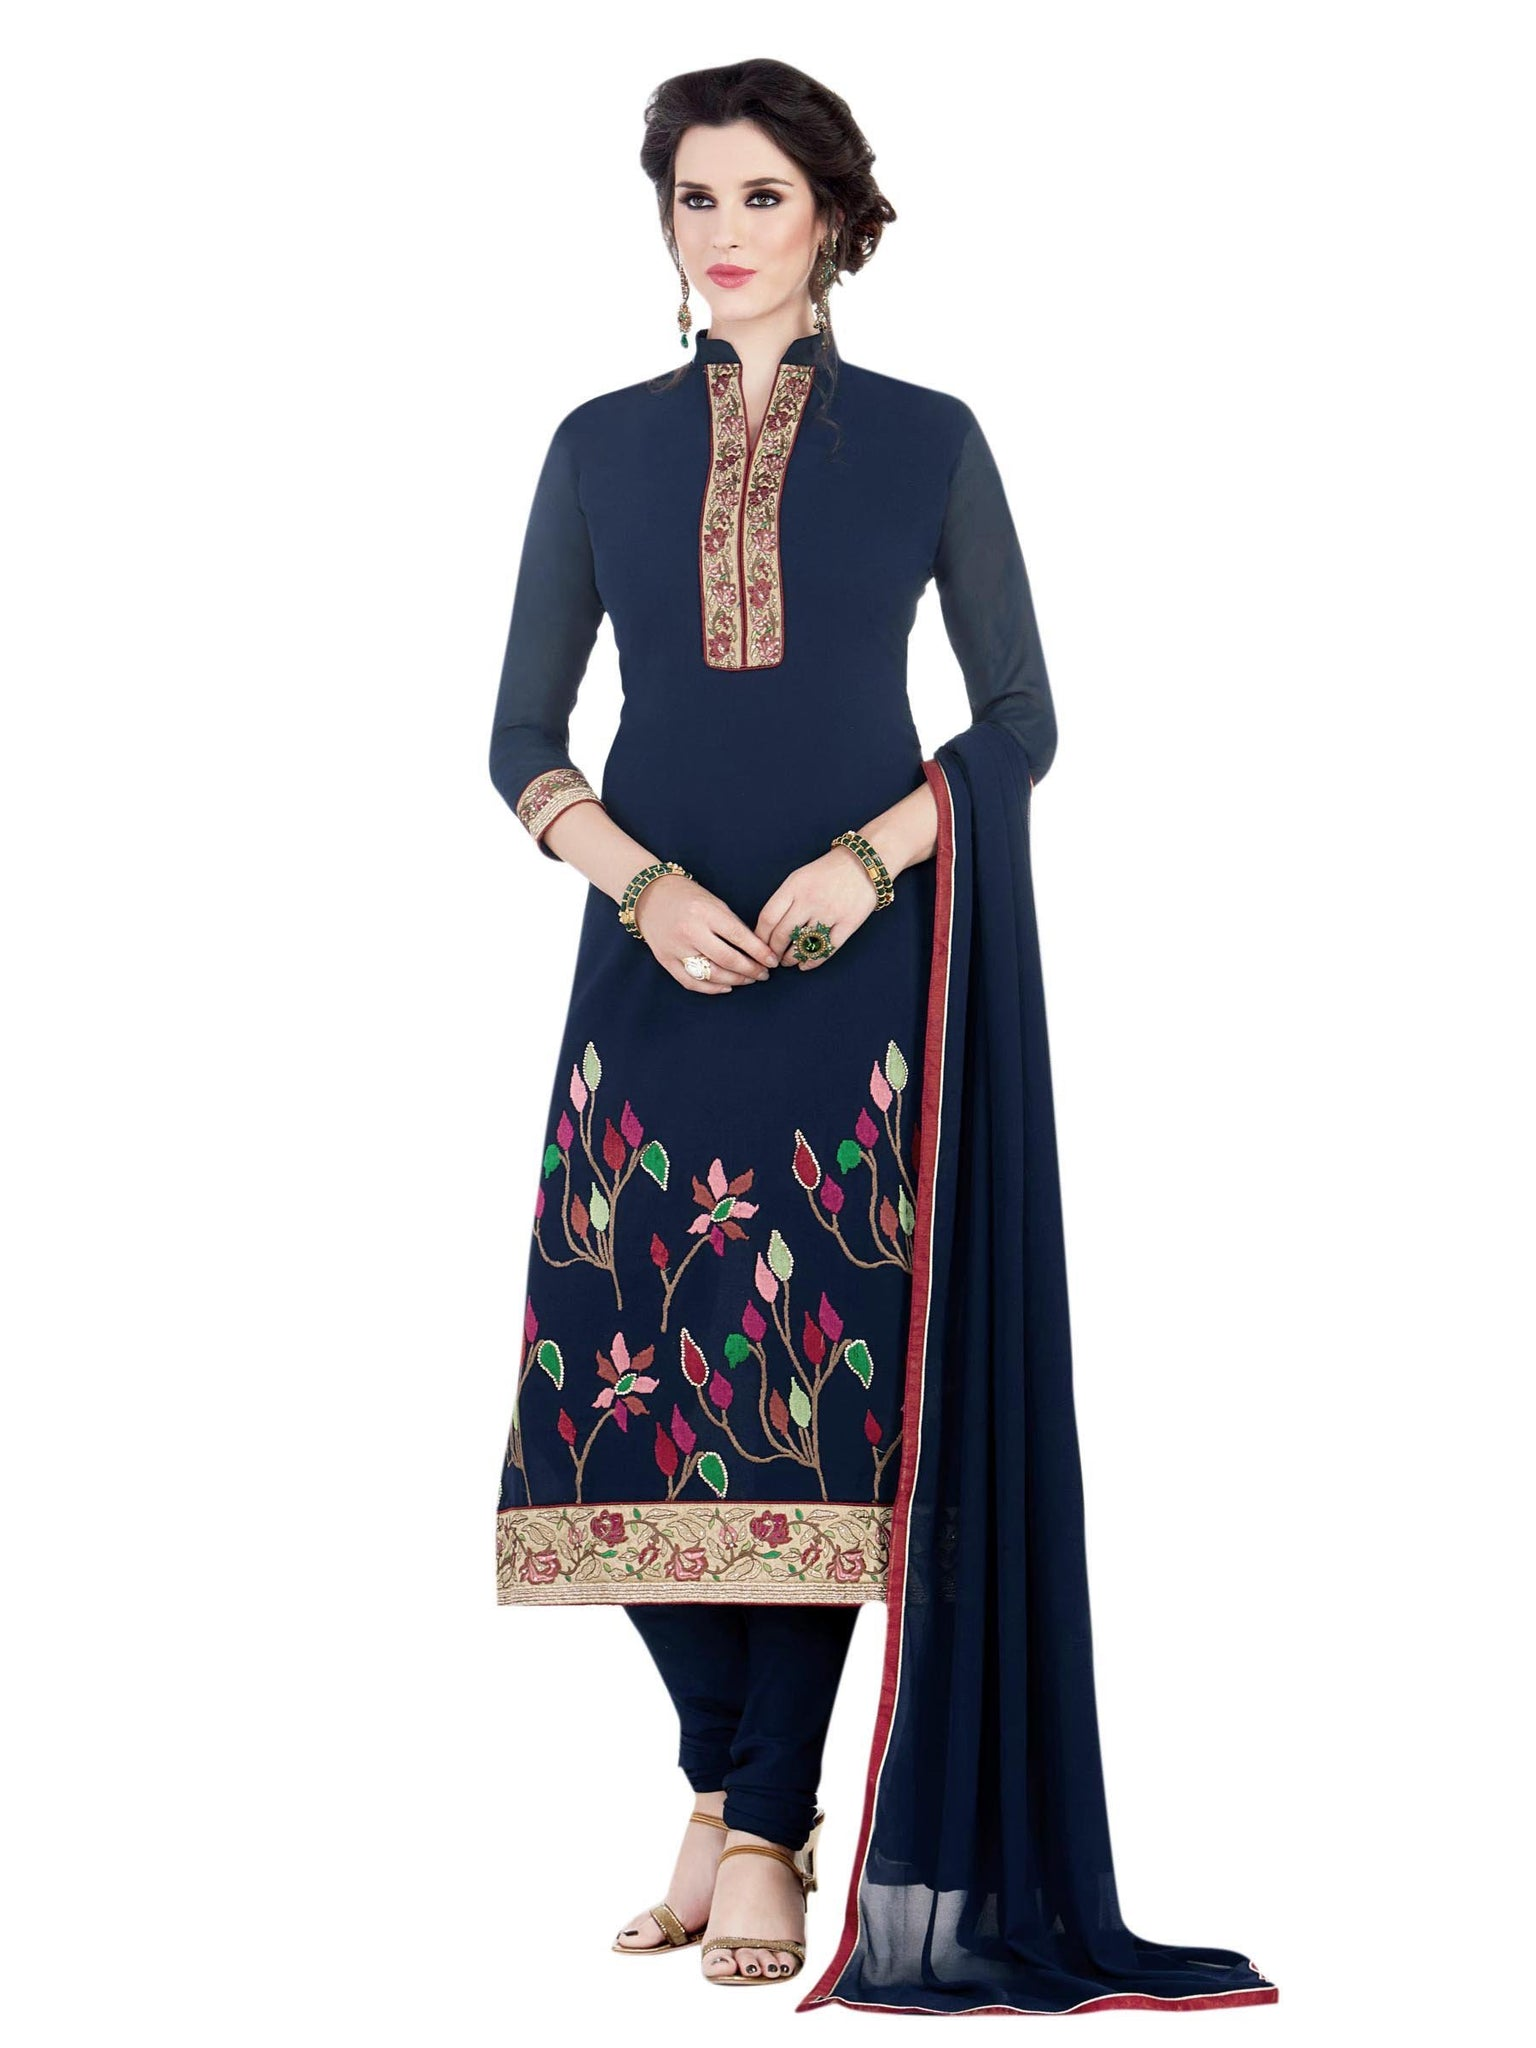 Styleez Salwar Kameez 153 Designer Contrast Floral Resham Thread Work With Ready Lace & Crystal